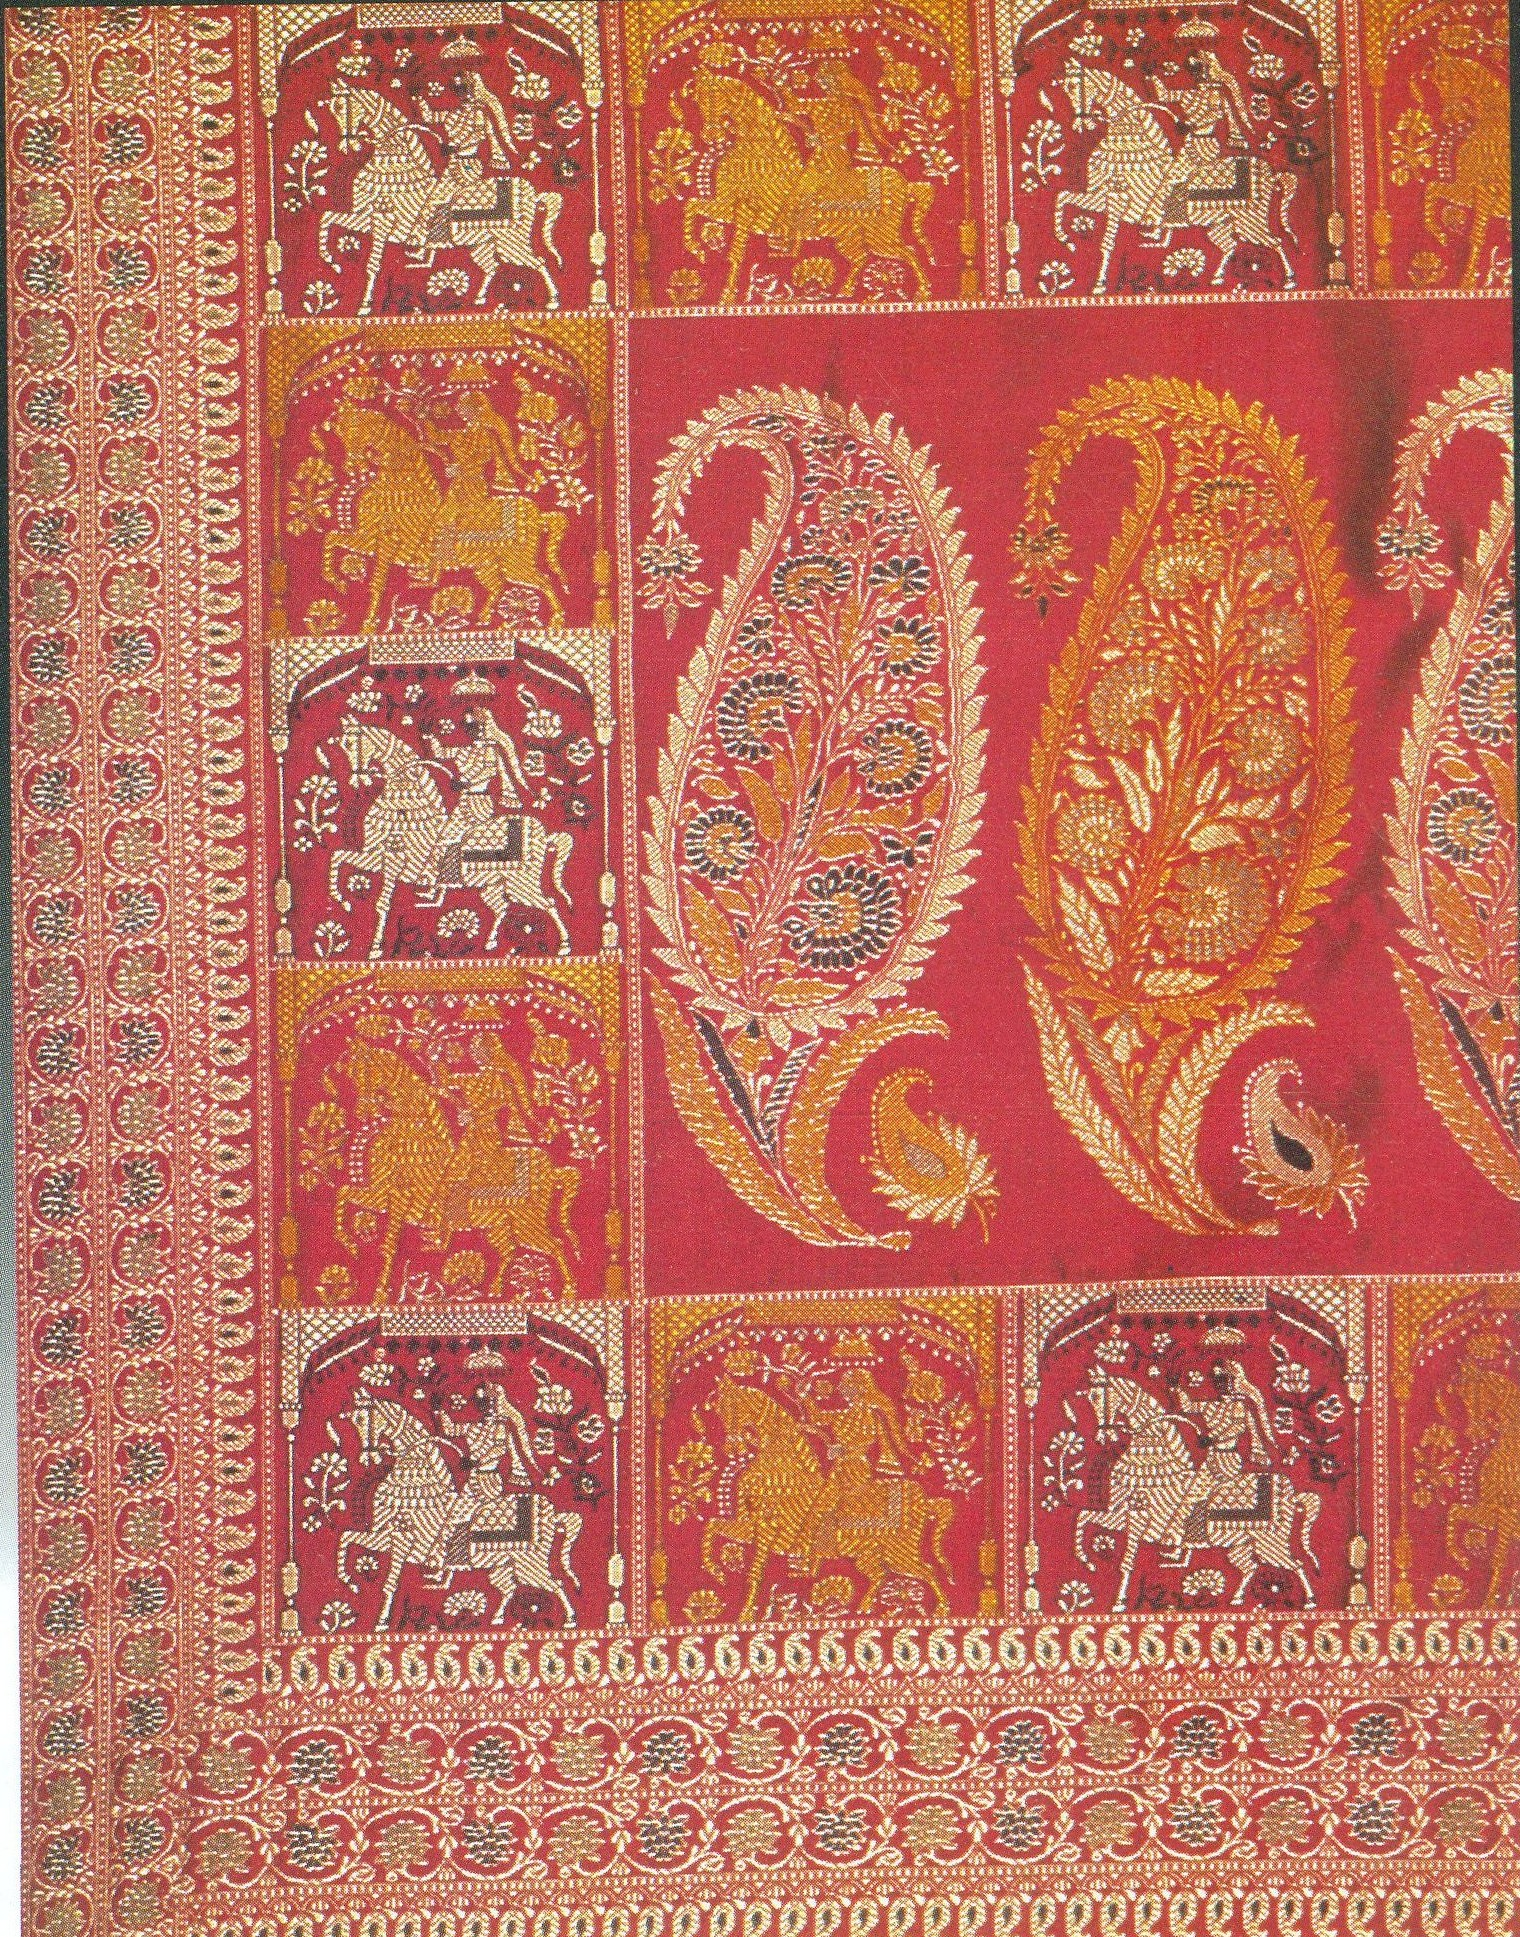 Baluchari Saris of West Bengal